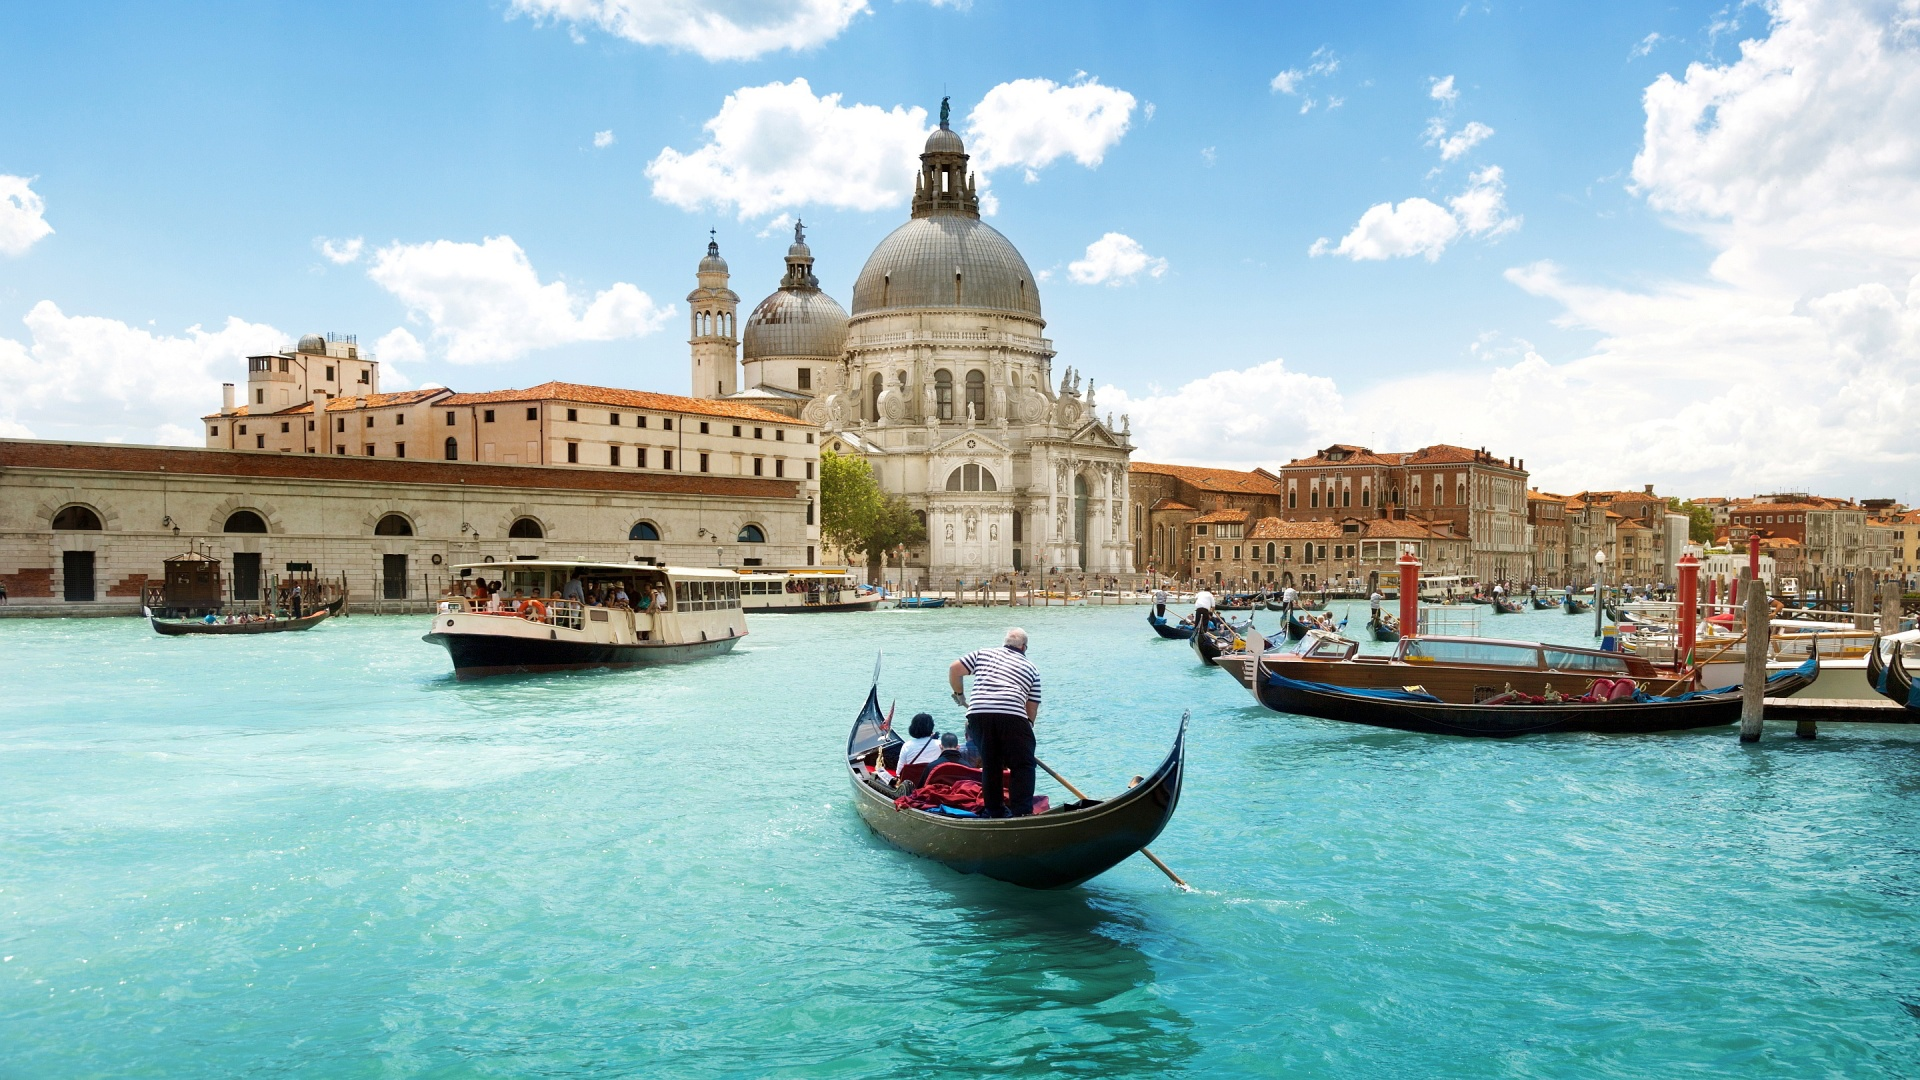 Venice High Quality Background on Wallpapers Vista